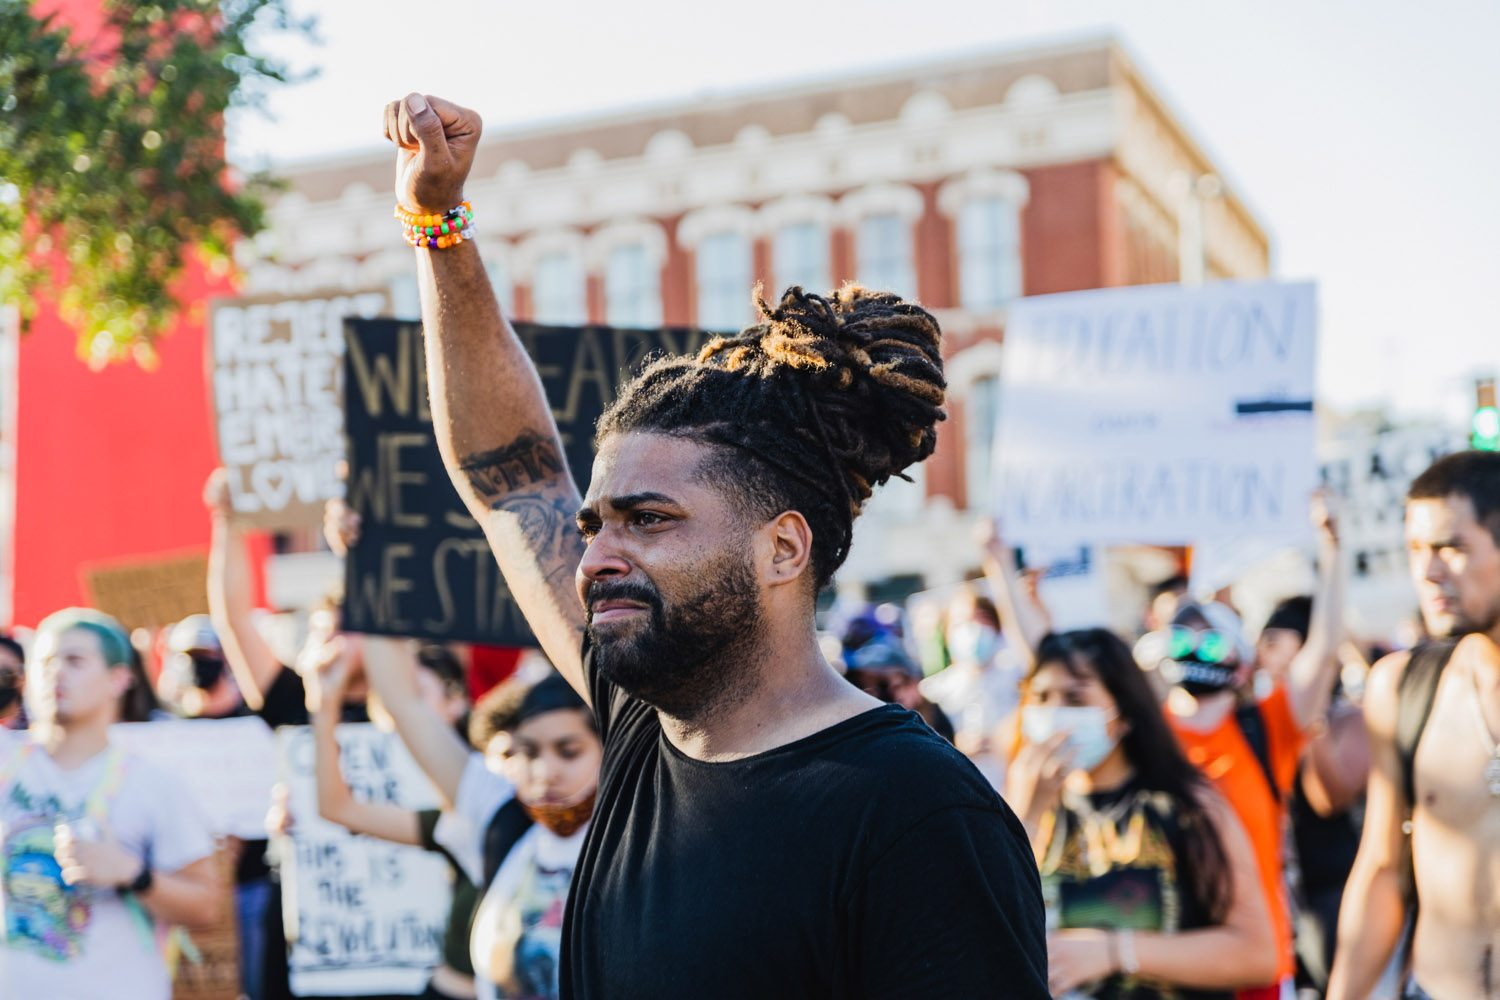 Organizer Antonio Lee gestures to the crowd during a Black Lives Matter protest at the Torch of Friendship on Monday, June 8, 2020. <b>Photo by Isaiah Alonzo | Heron contributor</b>